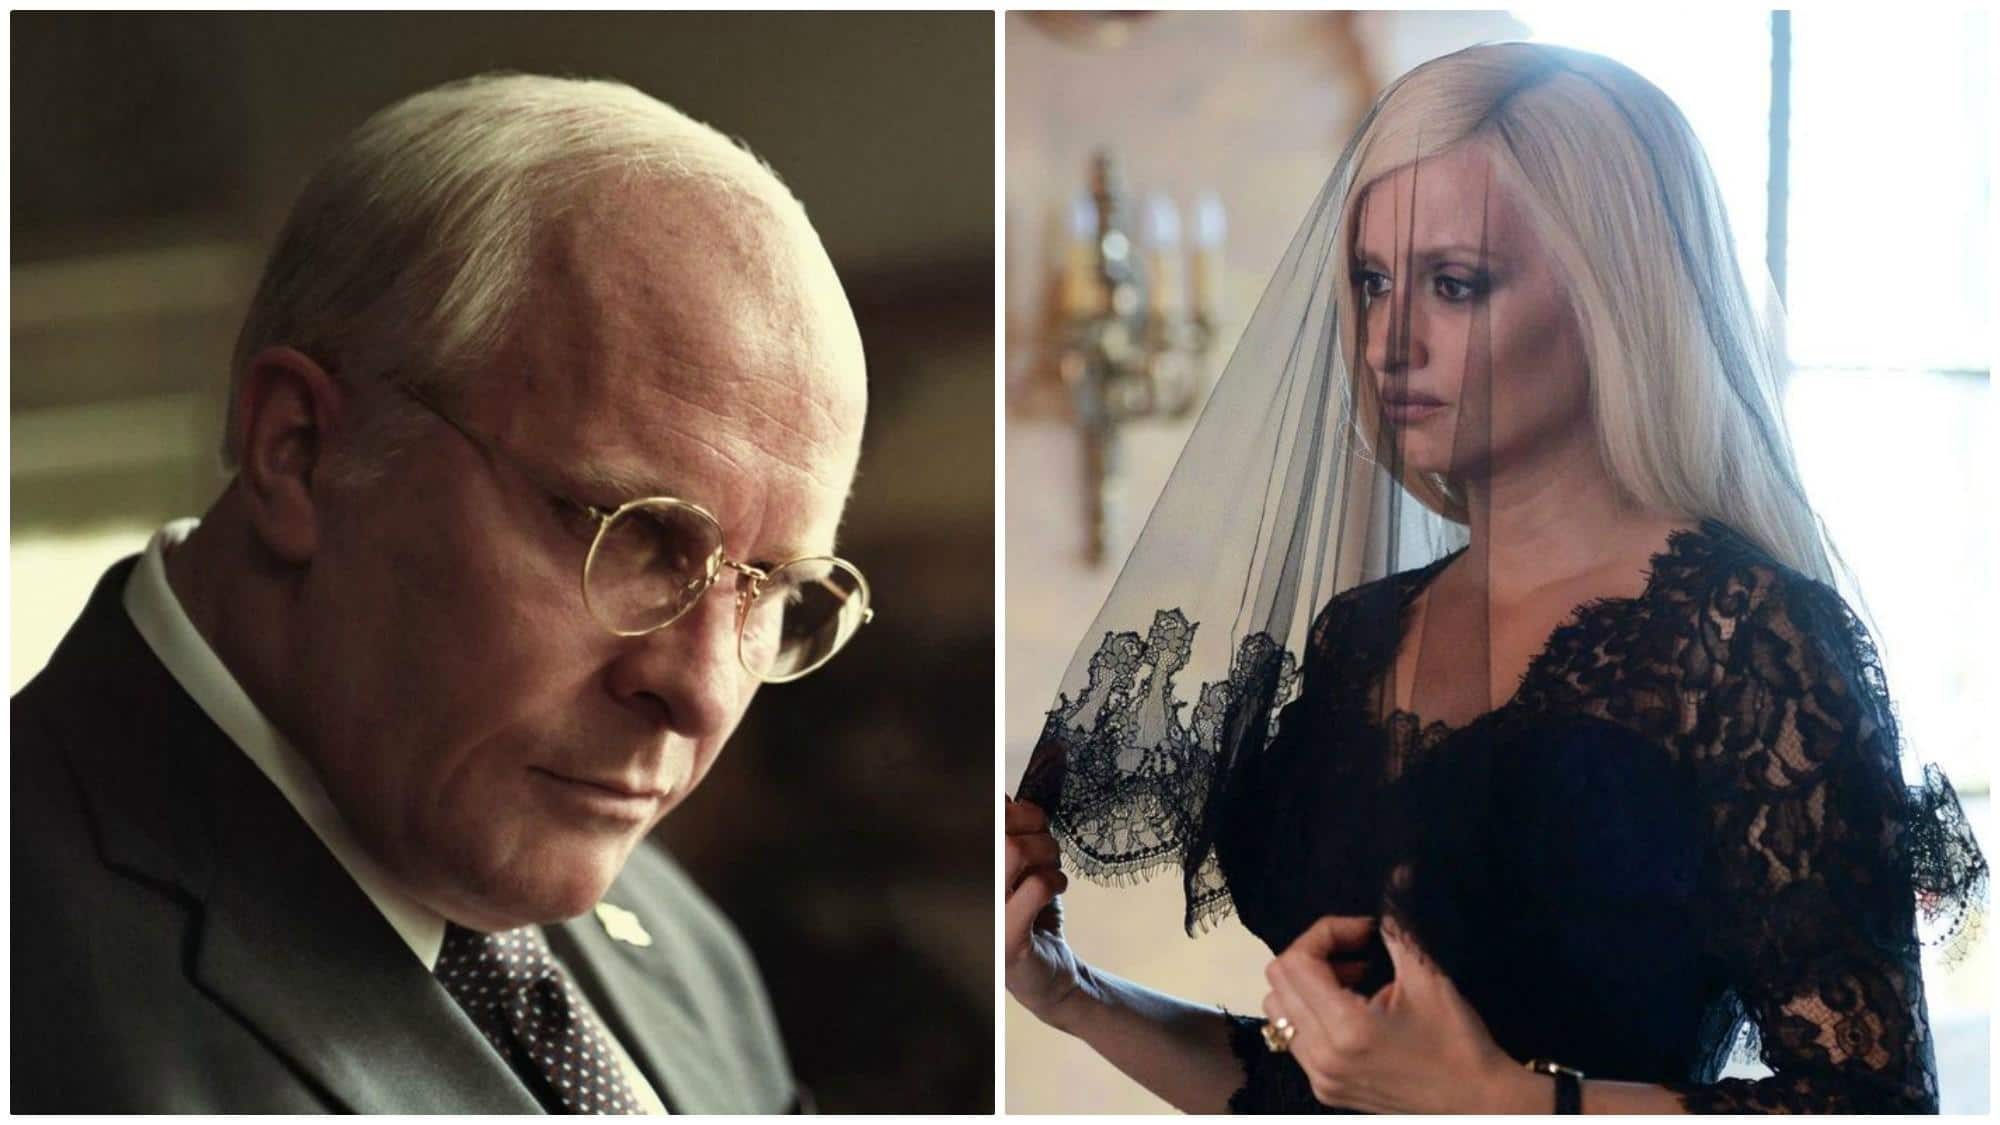 Golden Globes Nominations: 'Vice' Leads With 6, 'Versace' Tops TV With 4